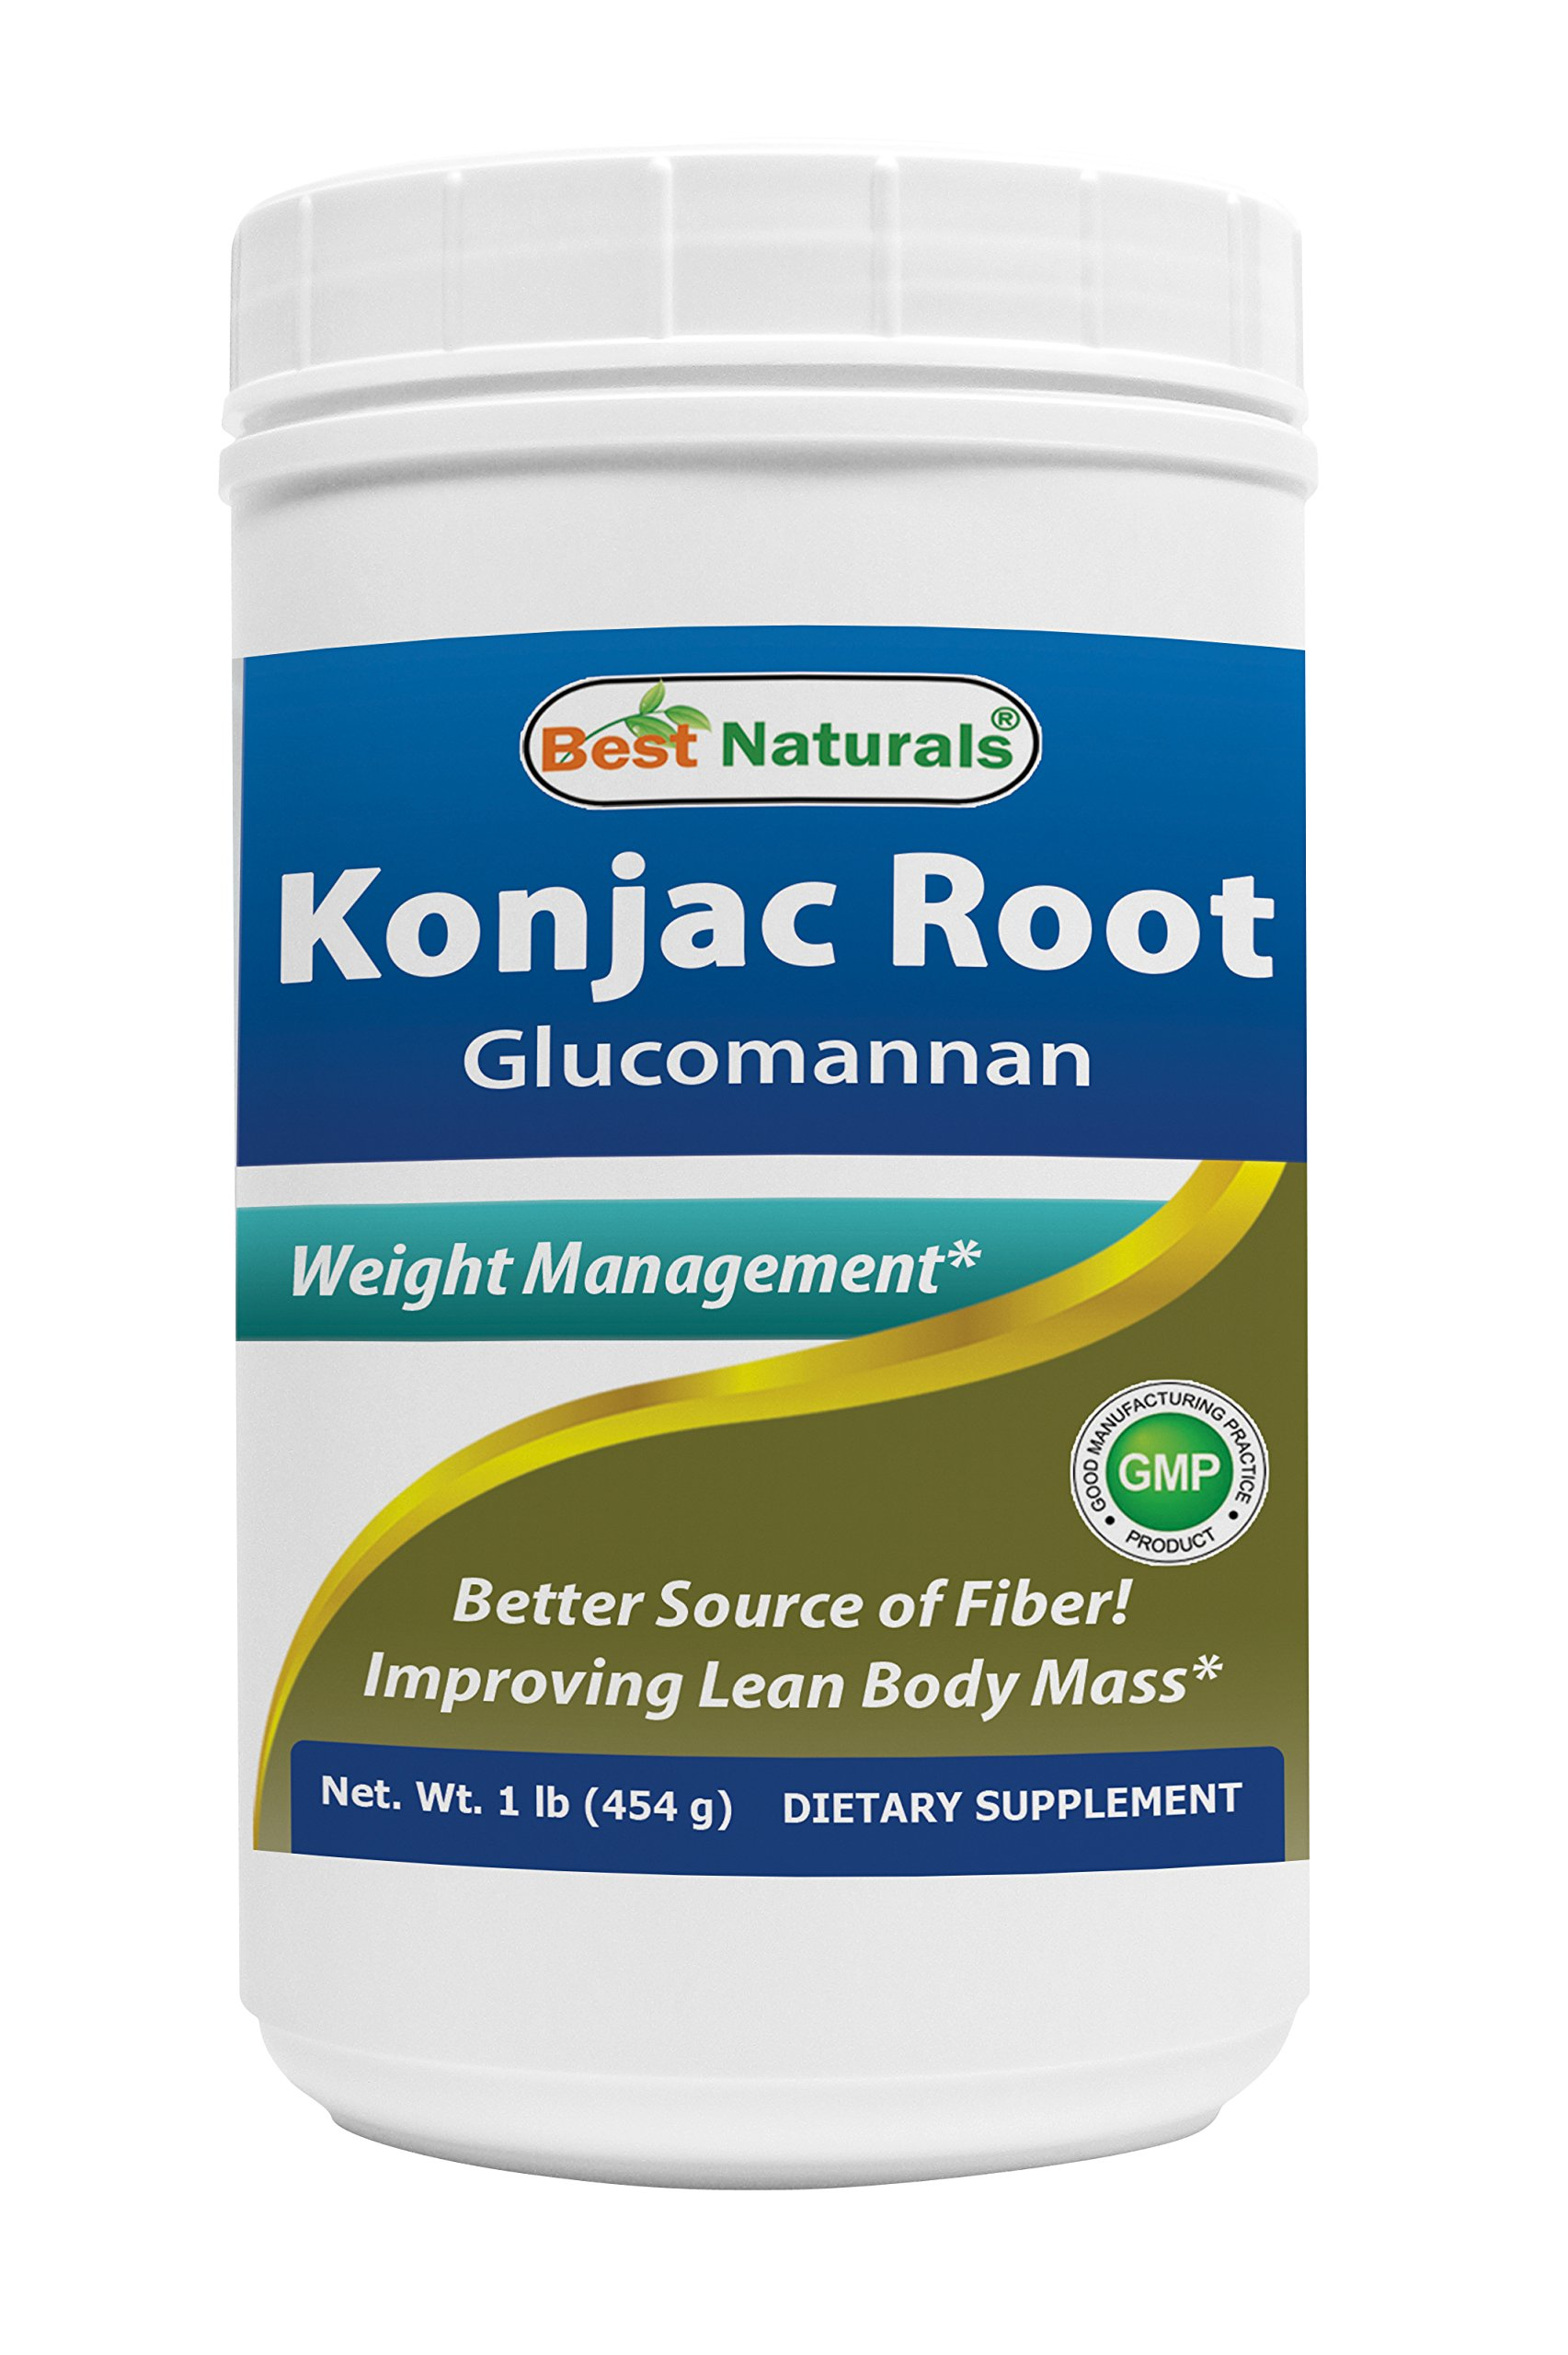 Best Naturals Glucomannan Weight Loss Pure Powder from Konjac Root, 1 Pound - 100% Natural Weight Loss Diet Powder That Really Work Fast - Best Appetite Suppressant - Boosts Metabolism